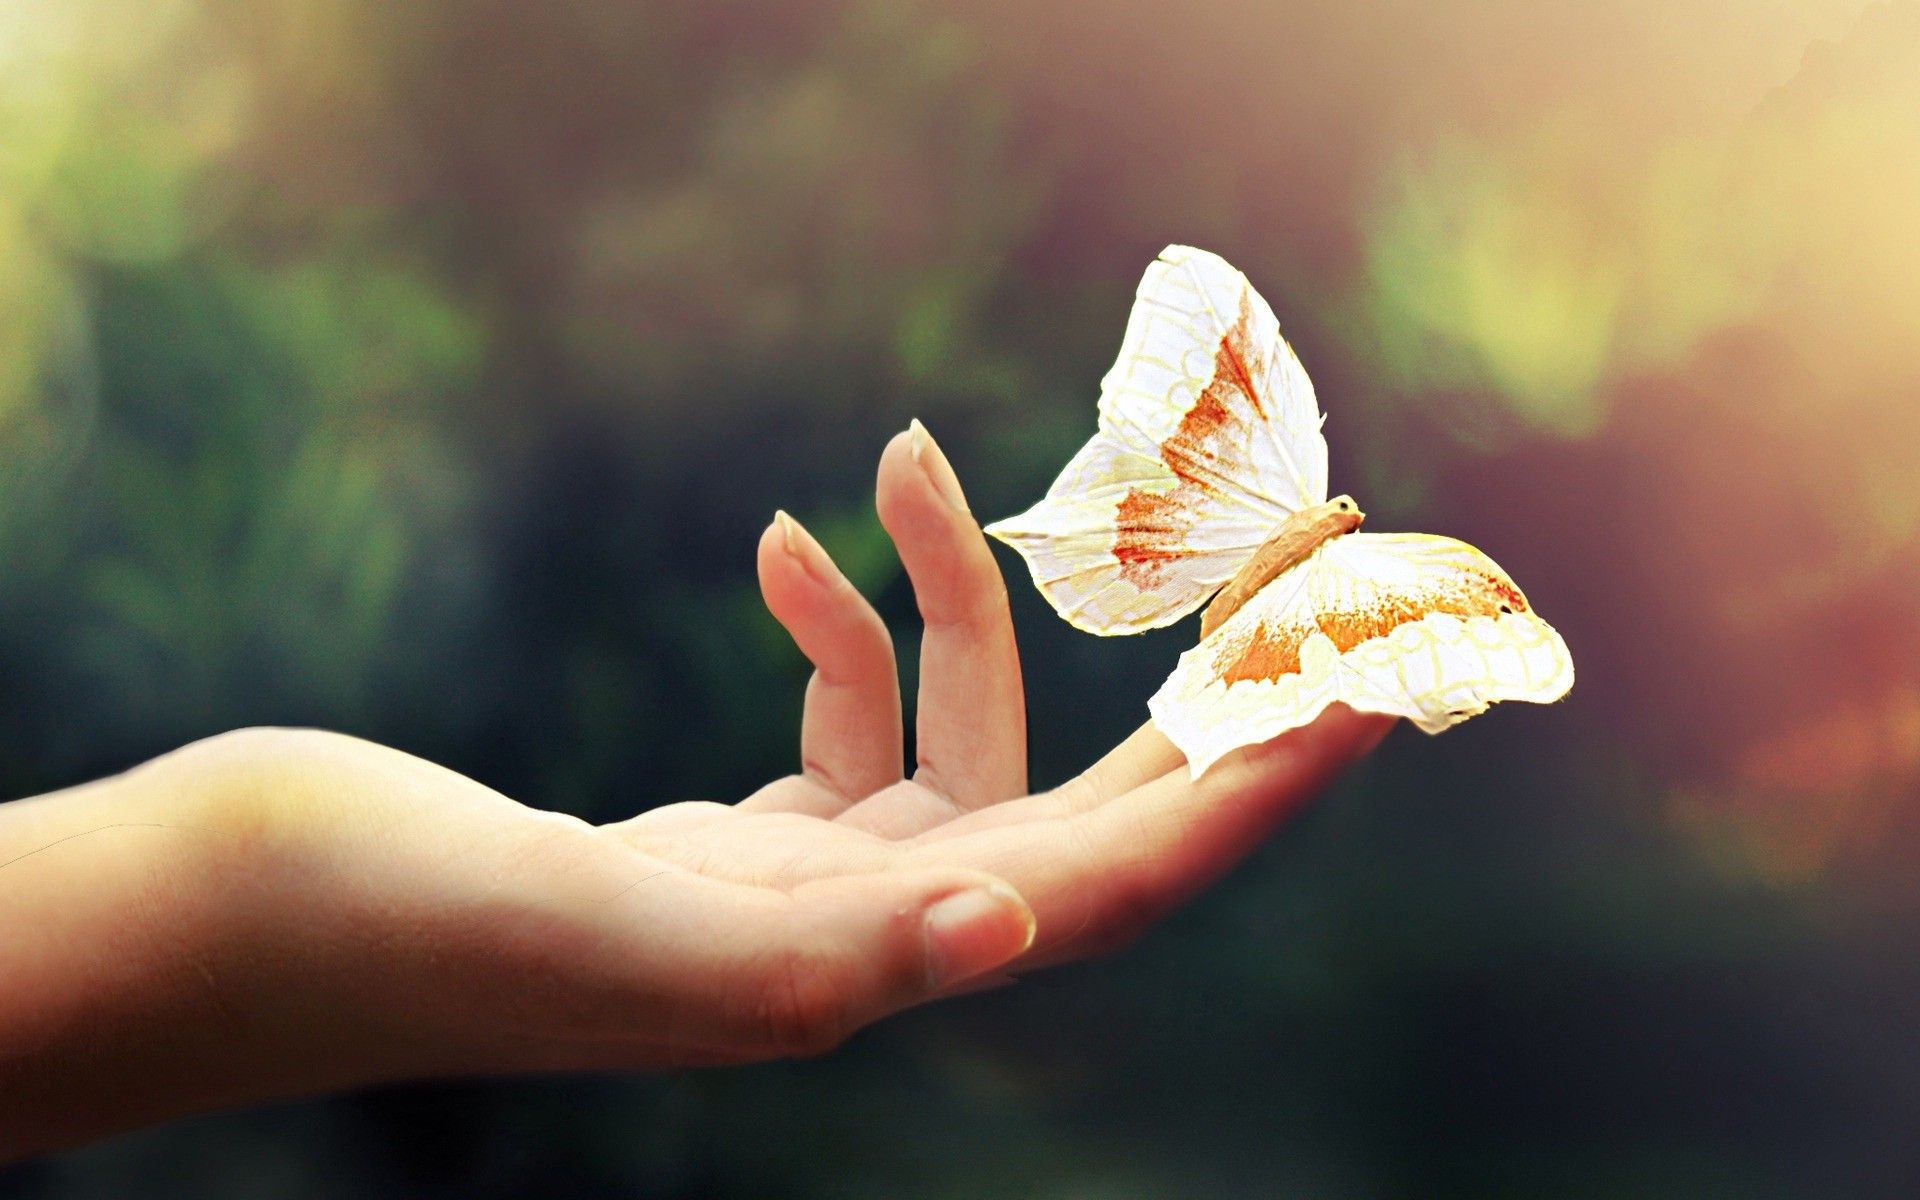 Cute Butterfly Desktop Wallpapers Top Free Cute Butterfly Desktop Backgrounds Wallpaperaccess Download, share or upload your own one! cute butterfly desktop wallpapers top